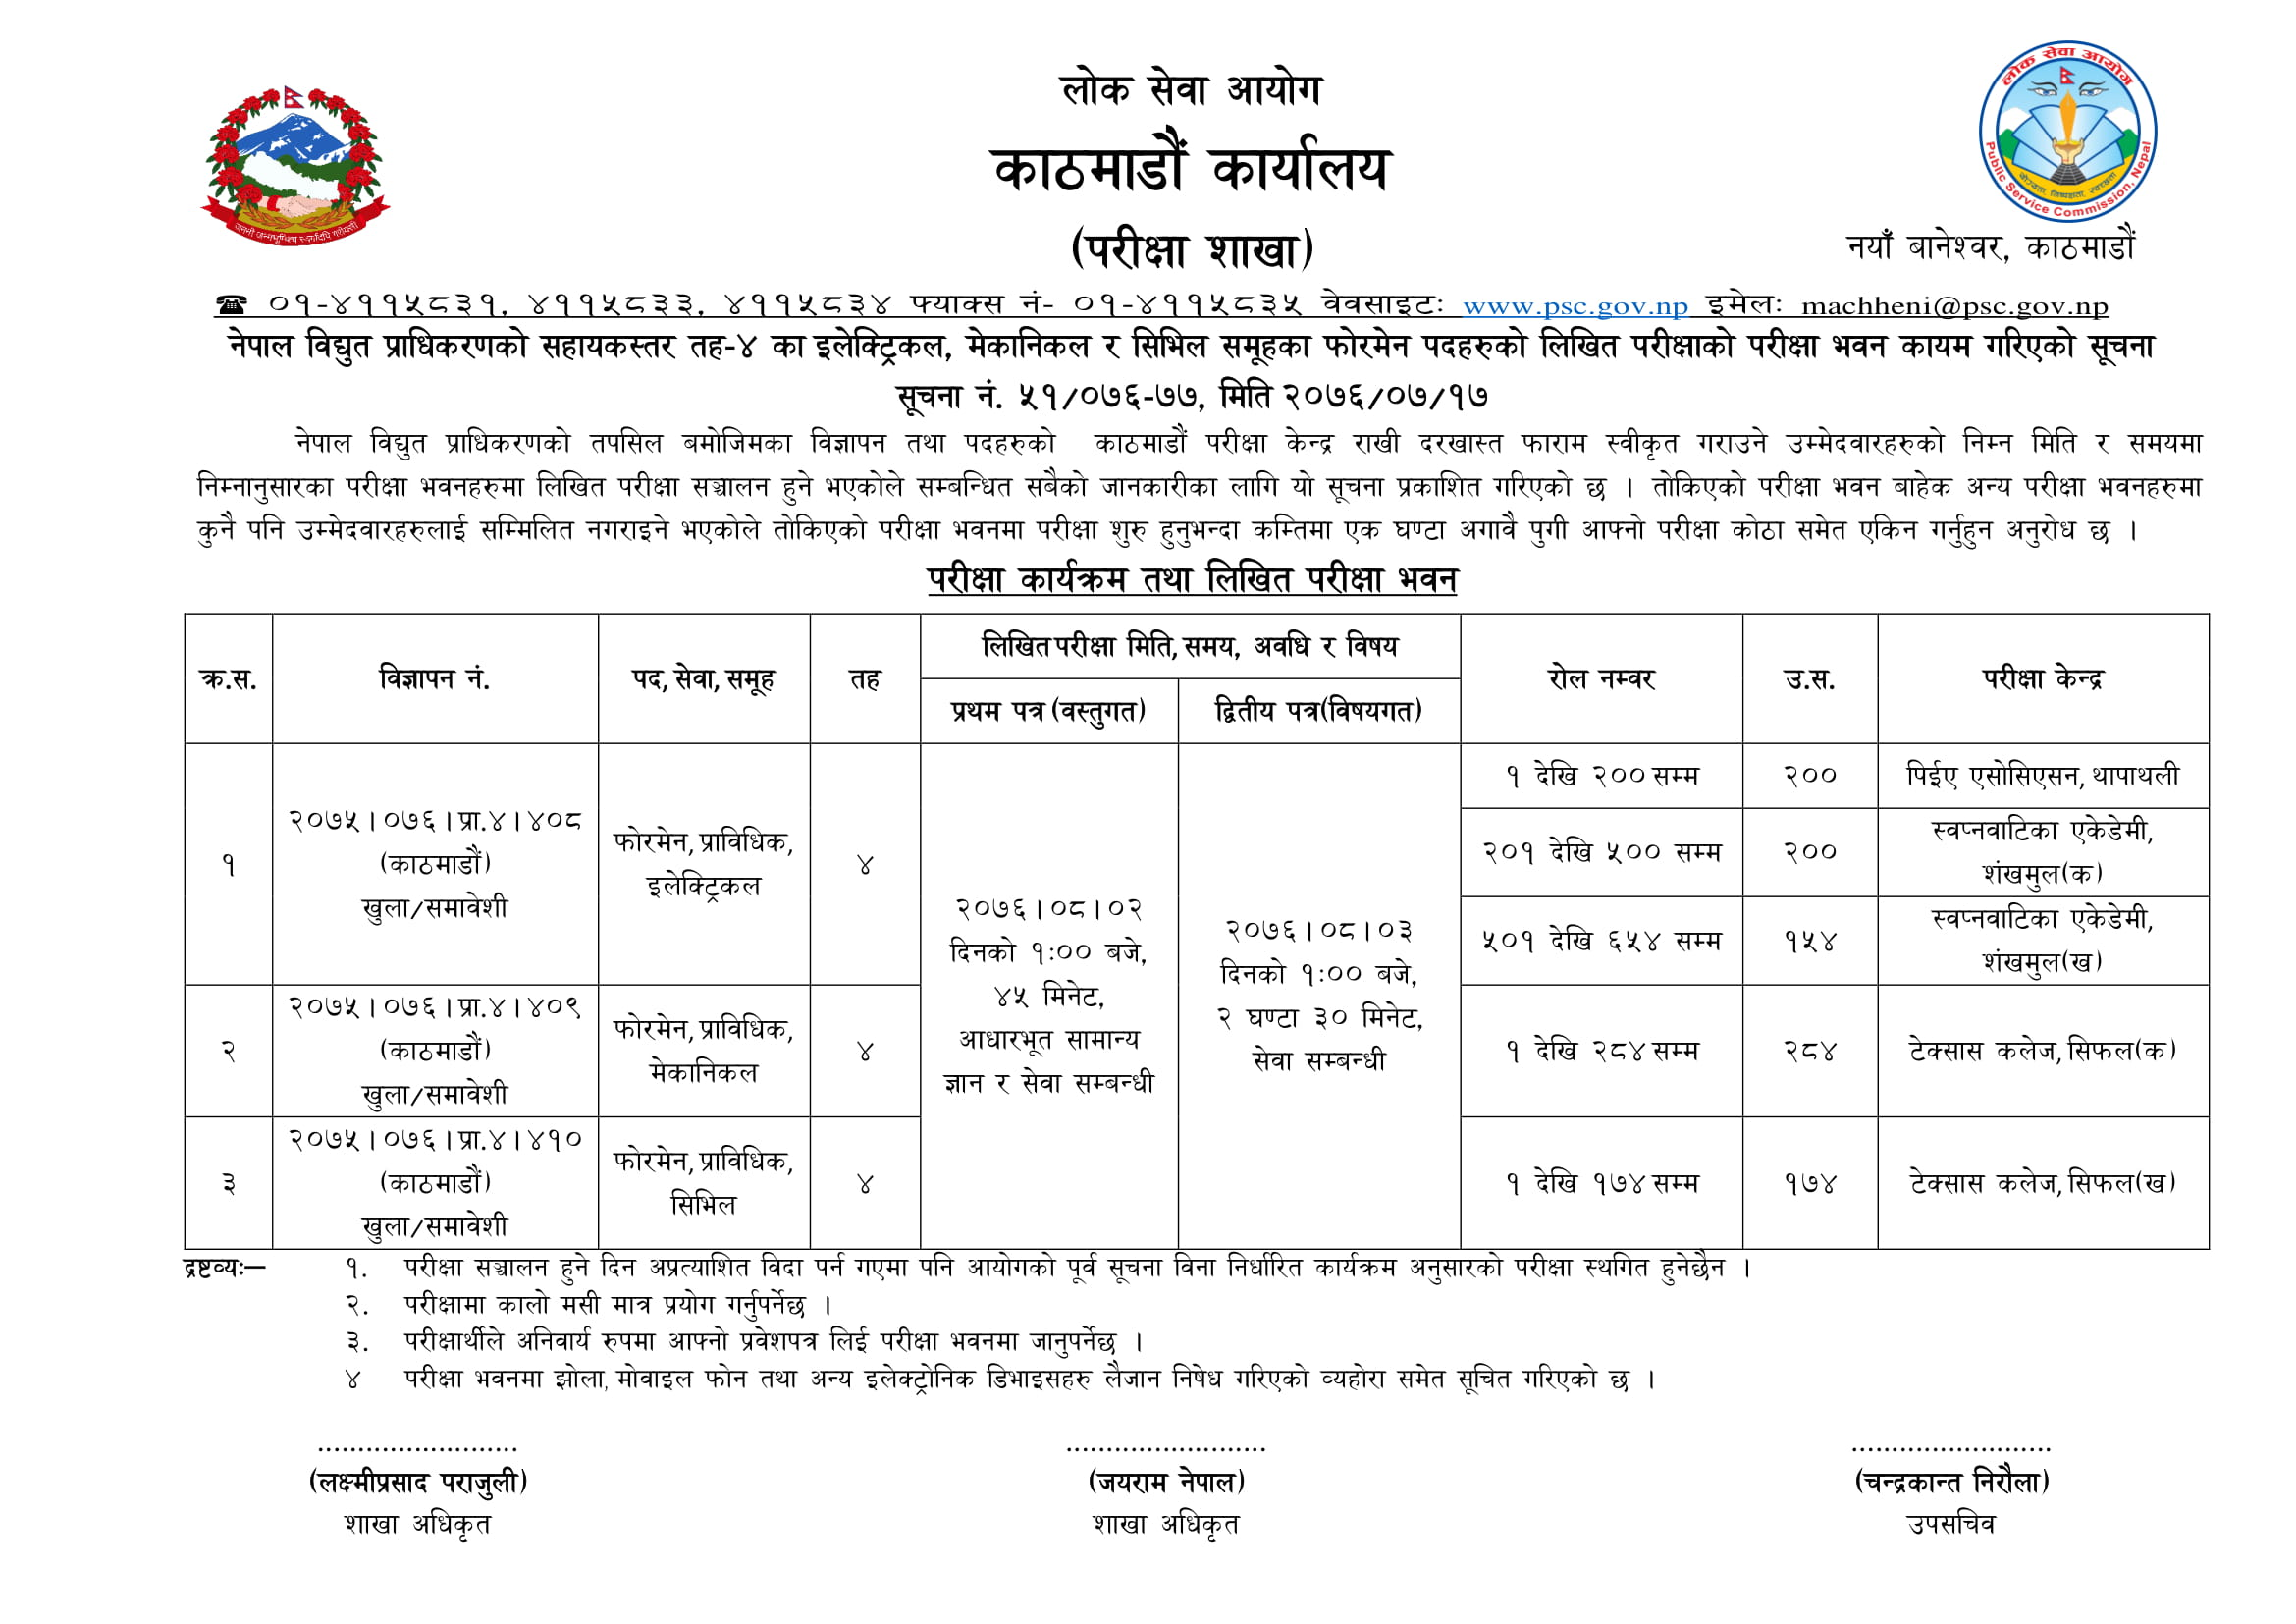 Lok Sewa Aayog (Public Service Commission- PSC) Nepal has published a Kathmandu exam center regarding the written examination program for open and inclusive of Levels 3, 4 and 5 of Nepal Nepal Bidhut Pradhikaran Electricity Authority (NEA). Lok Sewa Aayog (PSC) Dhankuta has published the notice for Nepal Bidhut Pradhikaran (NEA) open and inclusive post Exam Schedule and Exam Centers 2076. The notice has been published on NEA's official website as well as on Lok Sewa Aayog's website. Also, this notice is for various advertisement number of Officer Level for open and inclusive competition. Nepal Electricity Authority today announced job vacancies for various posts at the assistant level and officer level to be fulfilled by open competition. Nepal Bidhut Pradhikaran (NEA) is offering jobs at different administrations for different positions. Nepalese citizens who are interested and eligible can grab this opportunity. Nepal Bidhut Pradhikaran is looking for an energetic, result oriented candidate for the following positions. Nepal Bidhut Pradhikaran exam routine and exam centers According to the Nepal Electricity Authority exam notice, the exam will take place from Kartik 18 to Mangshir 11, 2076. Similarly, exams of the first paper and the second paper will hold on separate days. Likewise, the exam time will be 1:00 pm (also 8:00 am for a few posts). Moreover, Lok Sewa Aayog will take exams on behalf of Nepal Bidhut Pradhikaran. Please download the official PDF file of Nepal Electricity Authority exam notice from the link given below for detail.